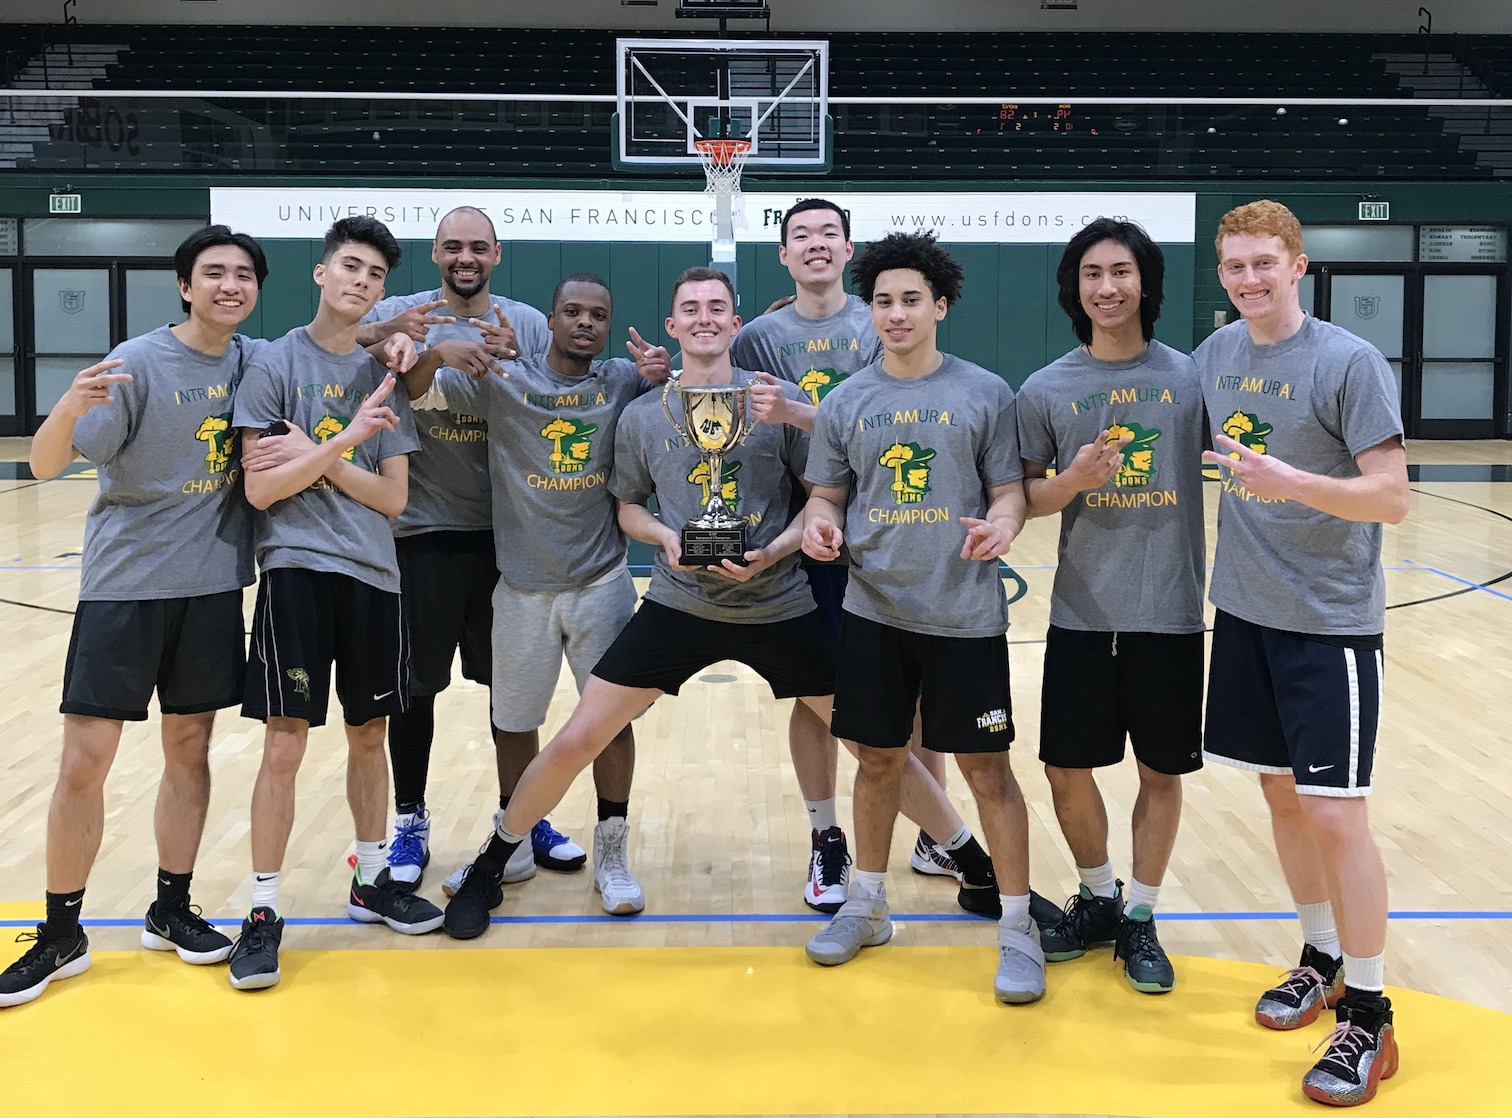 2019 Spring IM Champ Men's Basketball Bench Boyz